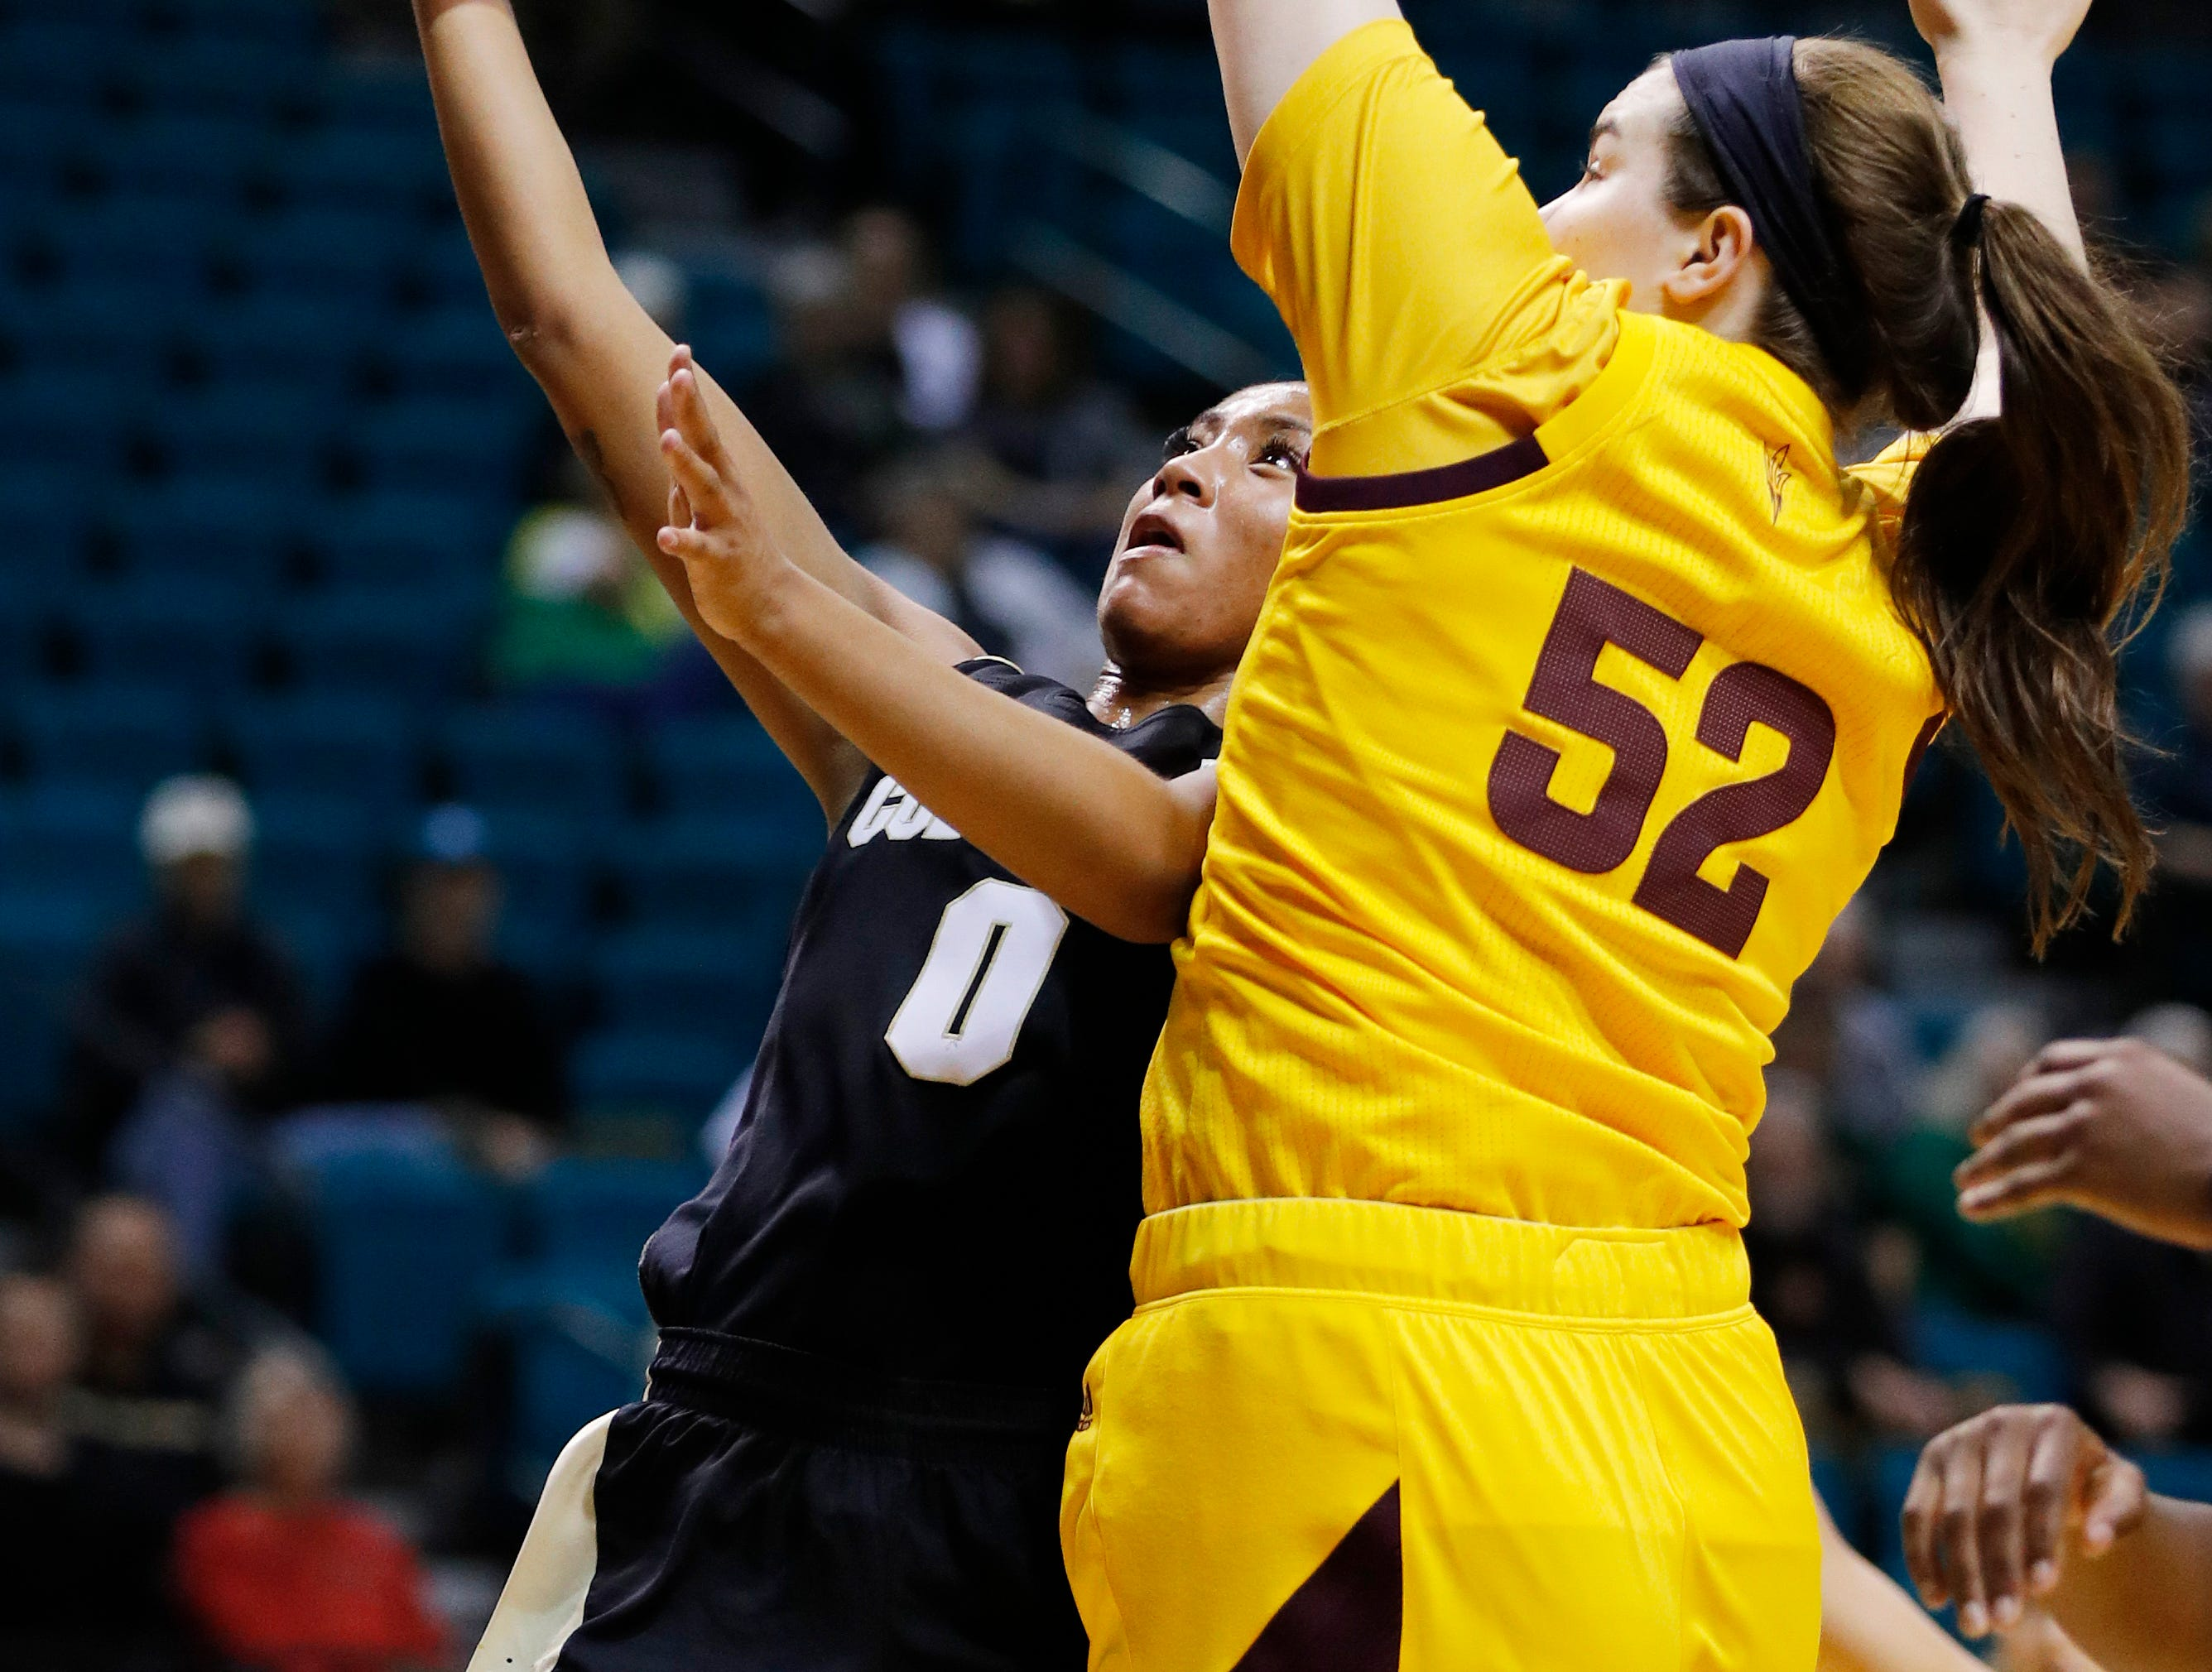 Colorado's Quinessa Caylao-Do (0) shoots around Arizona State's Jamie Ruden (52) during the first half of an NCAA college basketball game at the Pac-12 women's tournament Thursday, March 7, 2019, in Las Vegas. (AP Photo/John Locher)